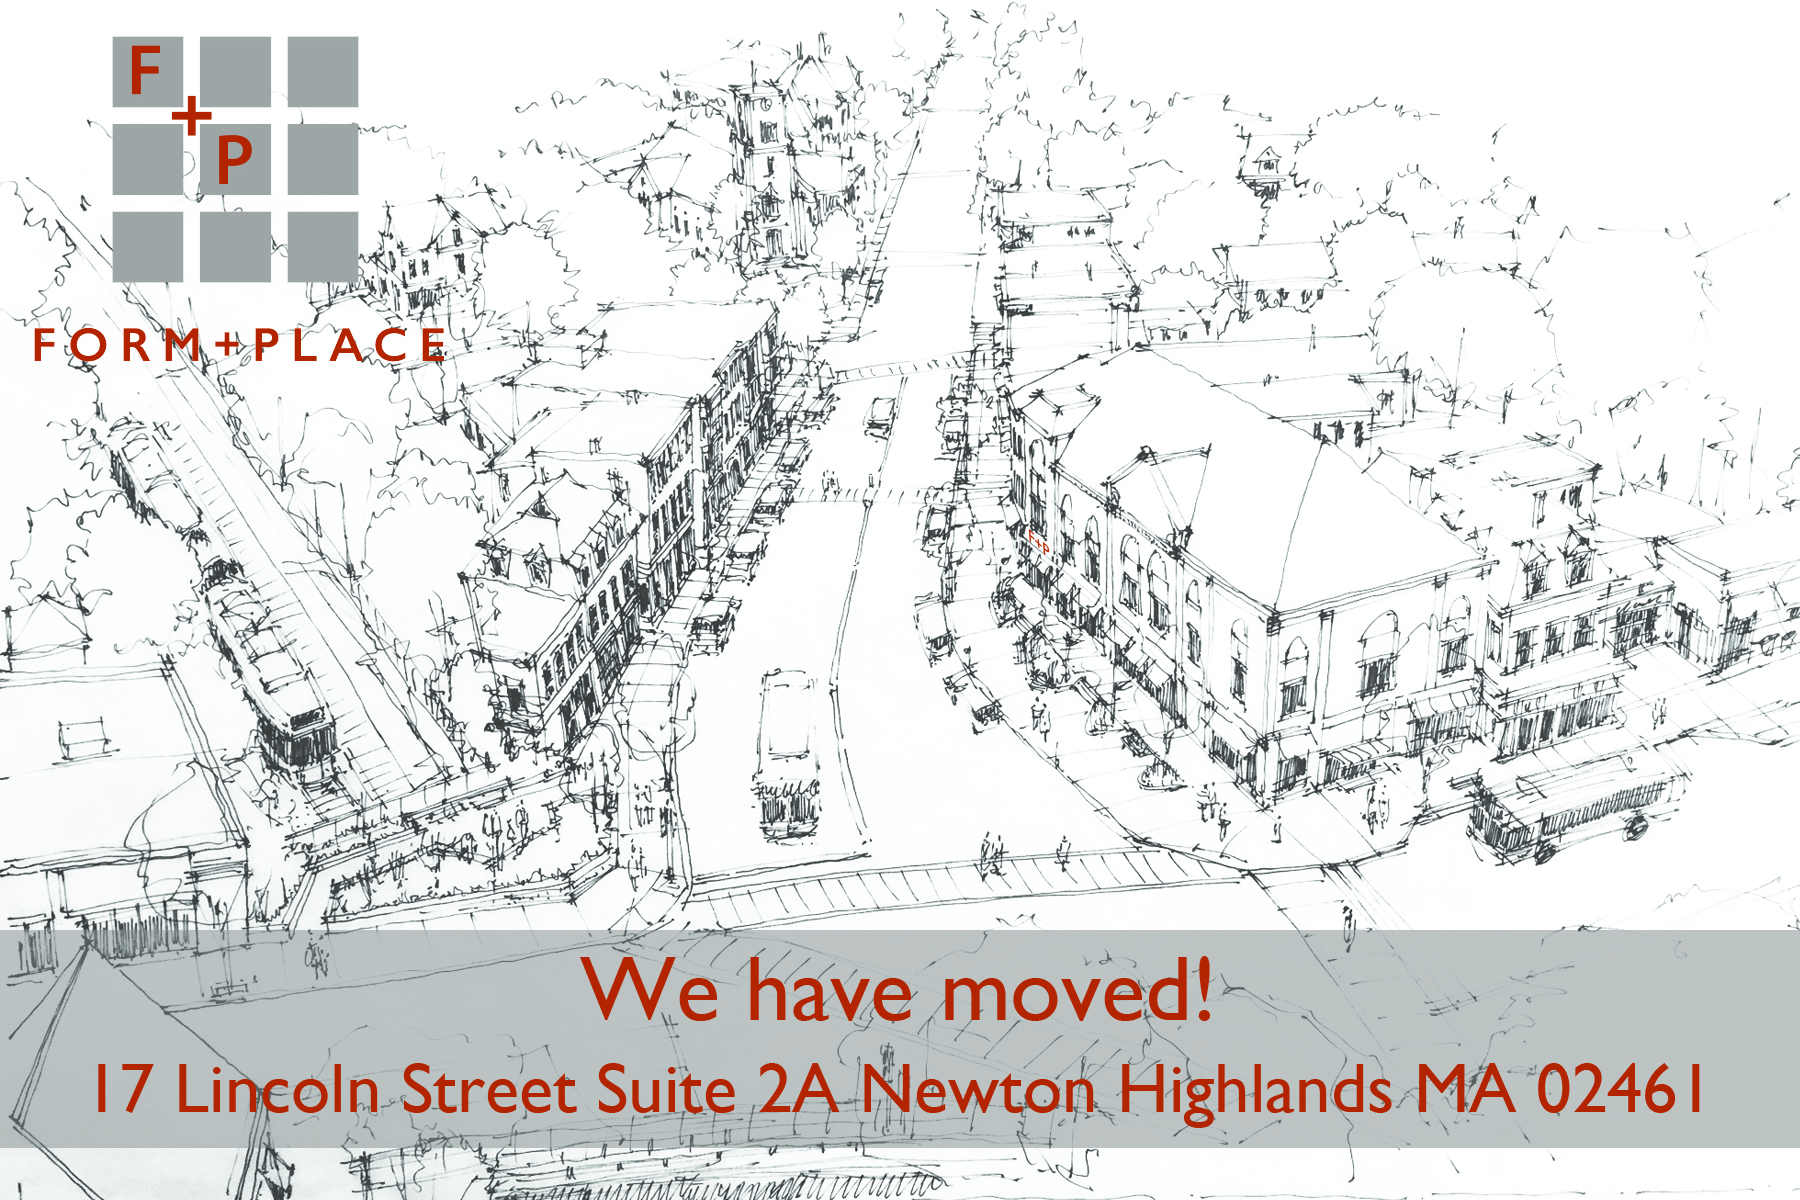 We are very pleased to be a part of this vibrant neighborhood. Stop by and say hello!